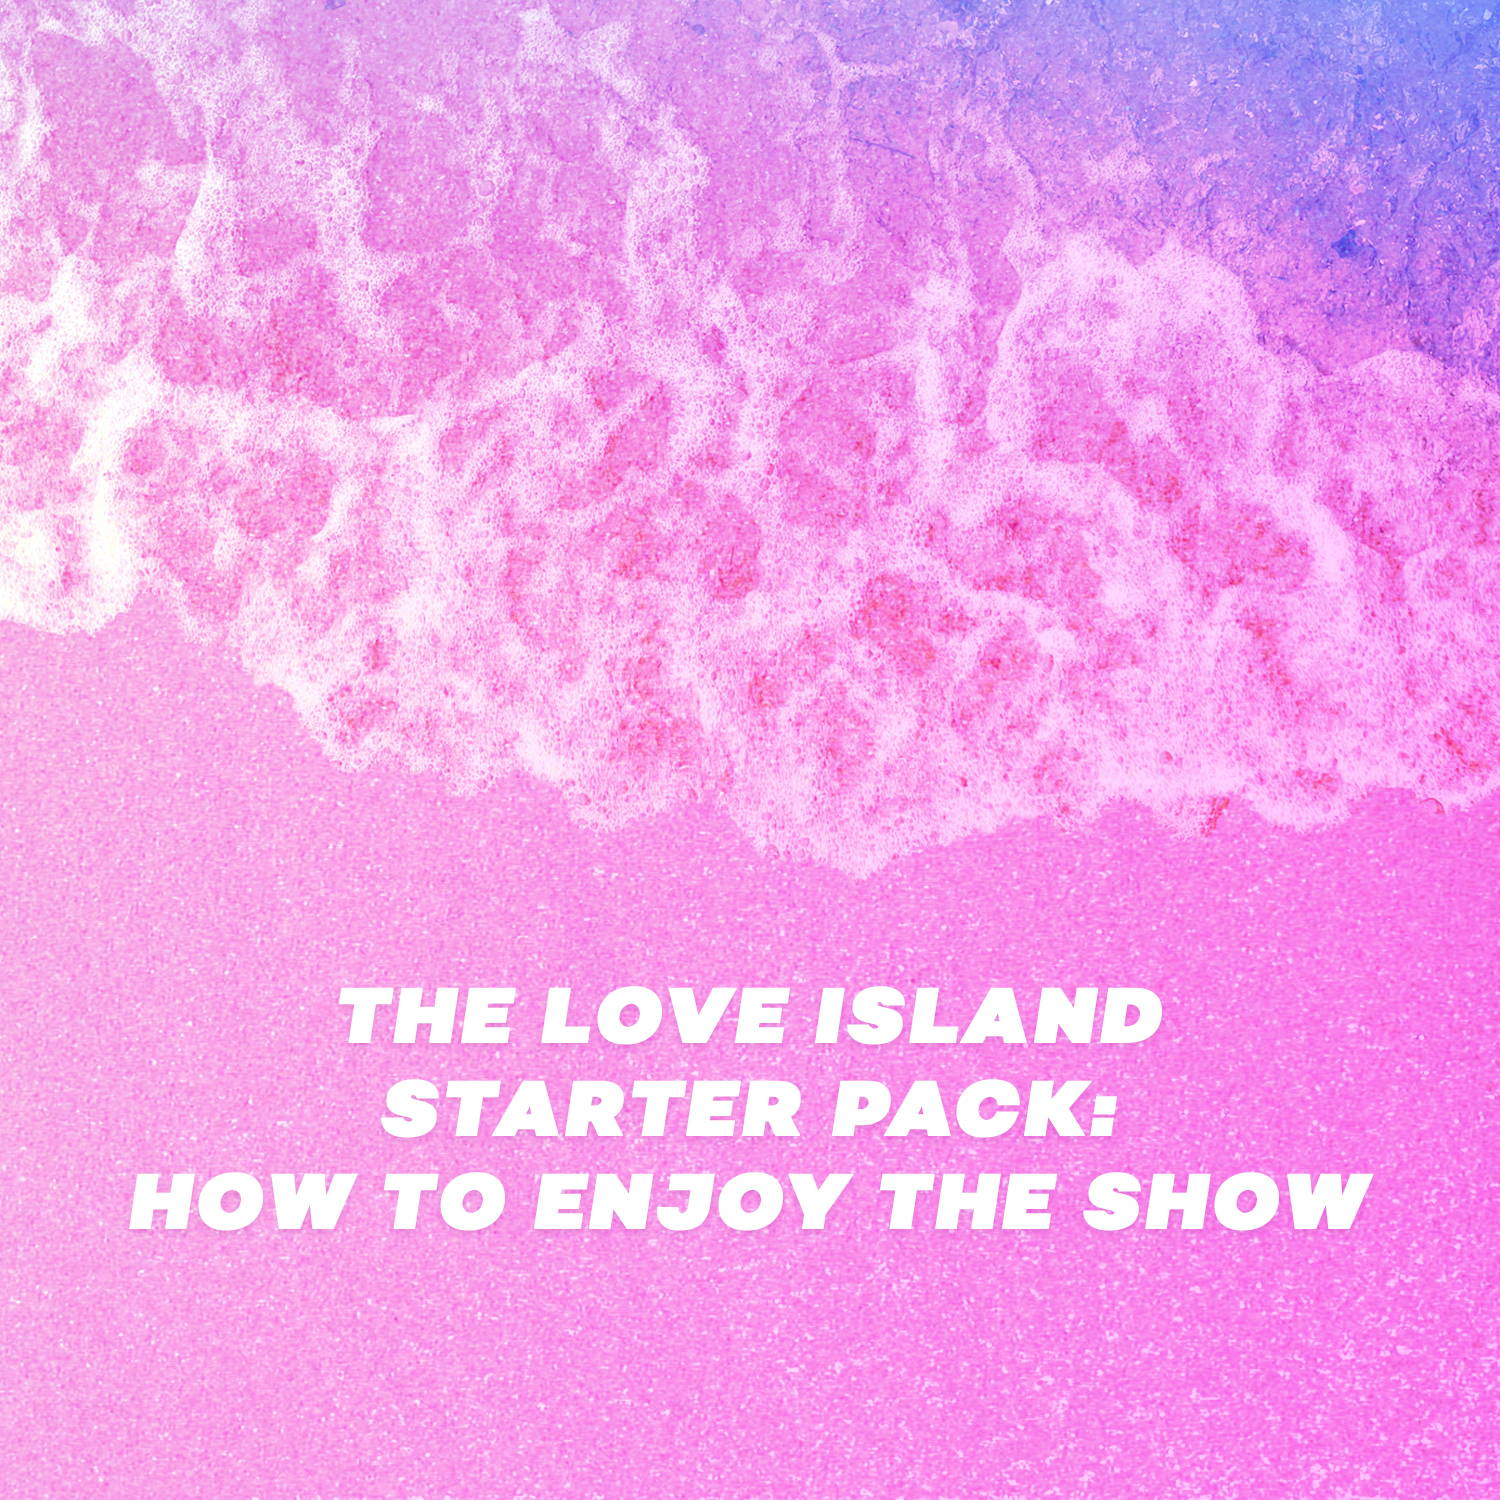 The Love Island Starter Pack: How To Enjoy The Show